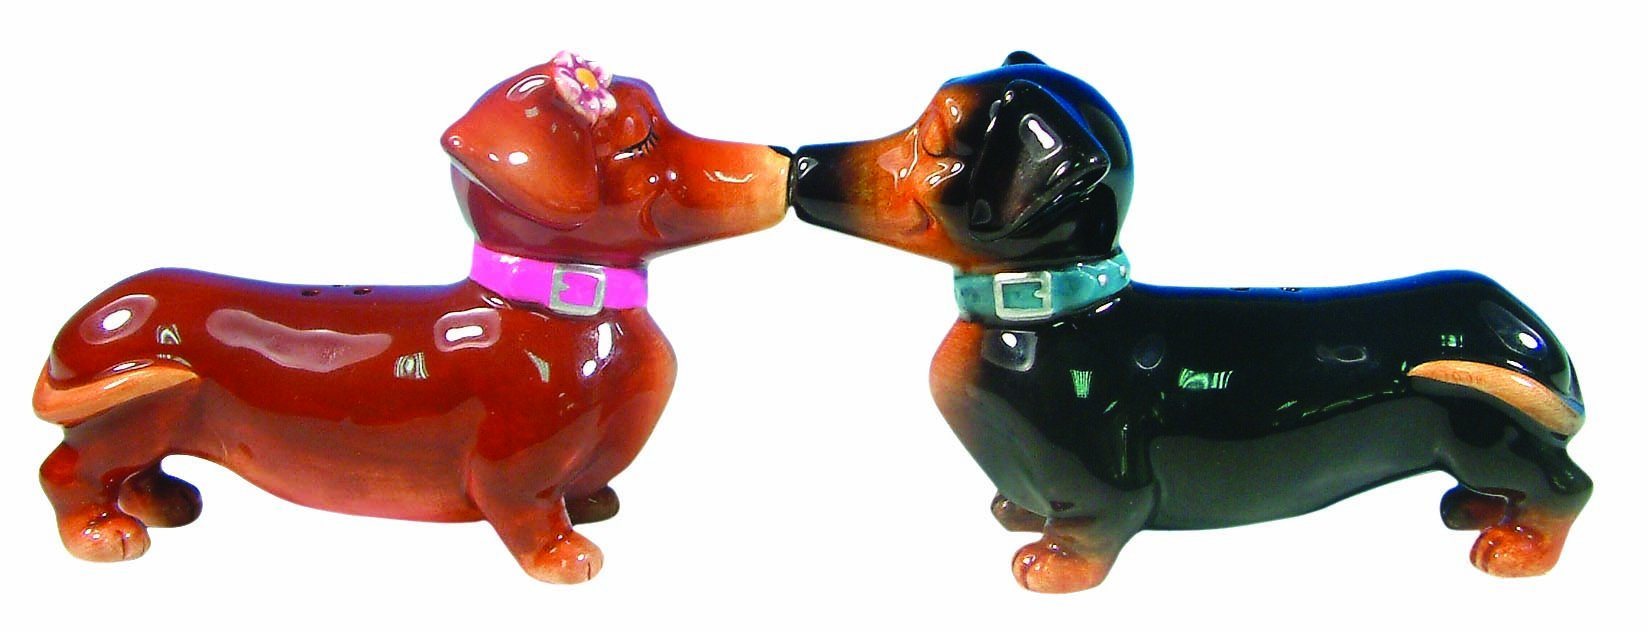 Westland Giftware Mwah Magnetic Dachshunds Salt and Pepper Shaker Set, 2-3/4-Inch by Westland Giftware